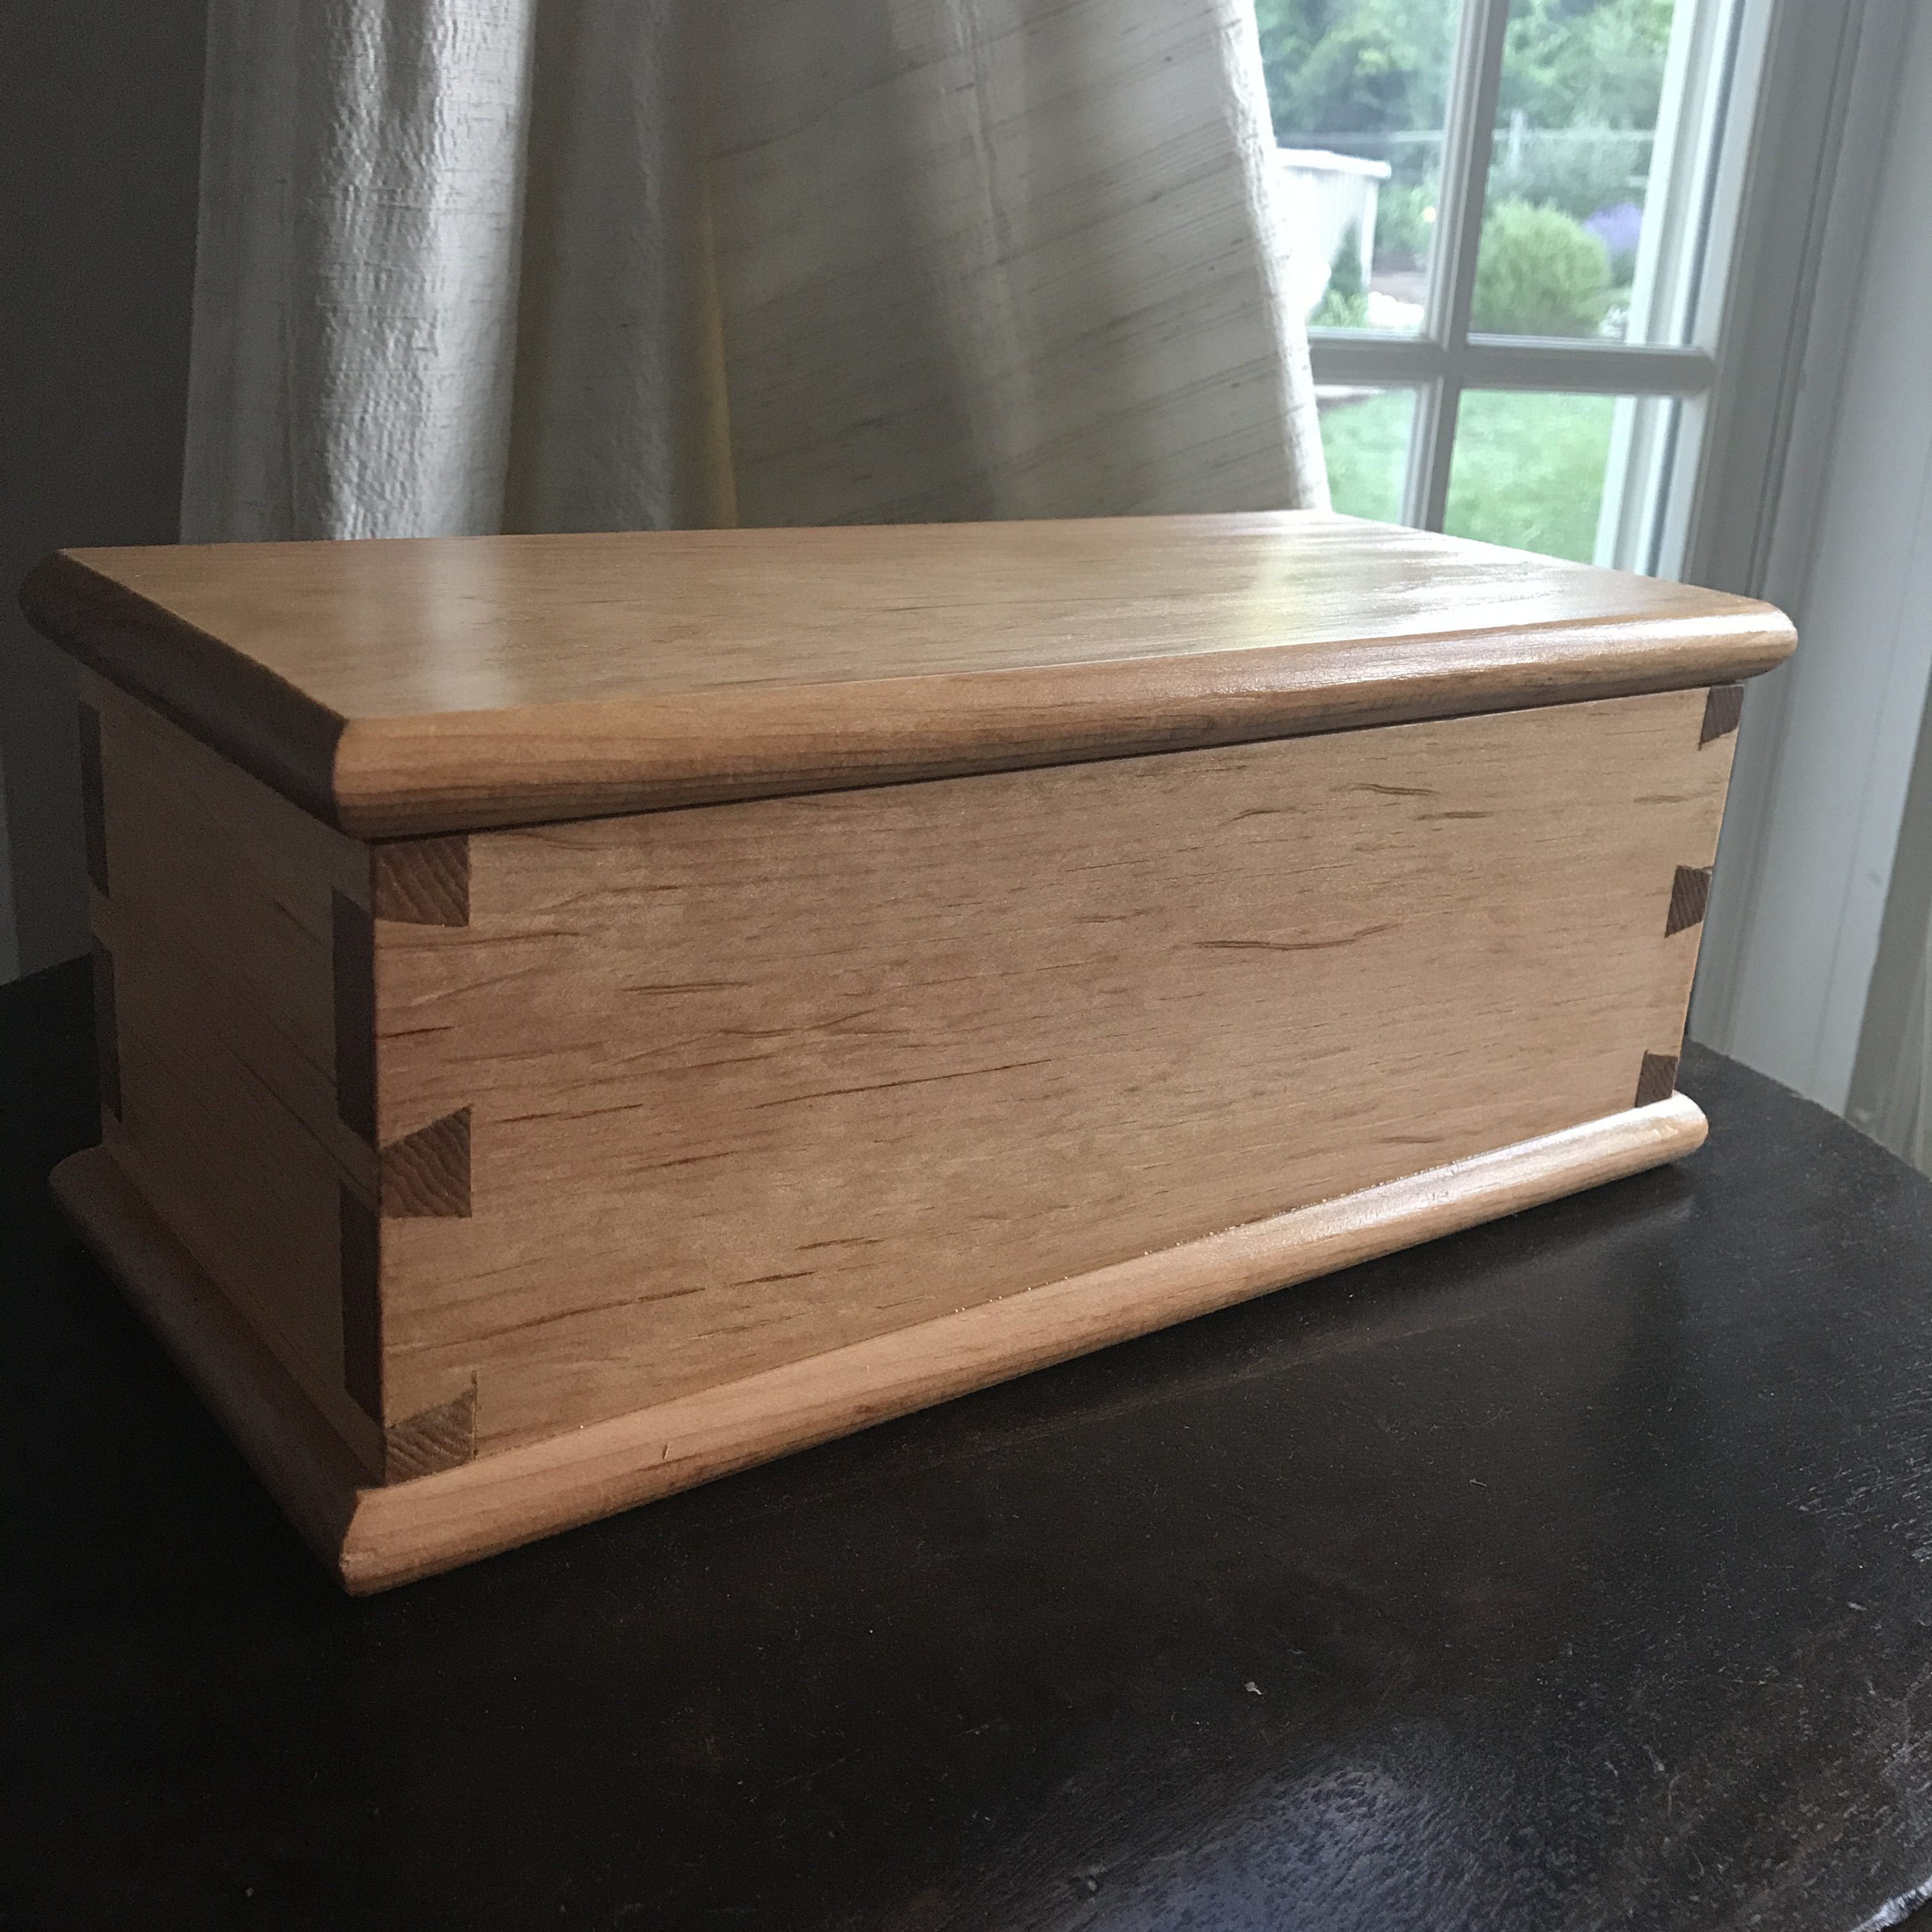 Dovetail Box by CJ Broome